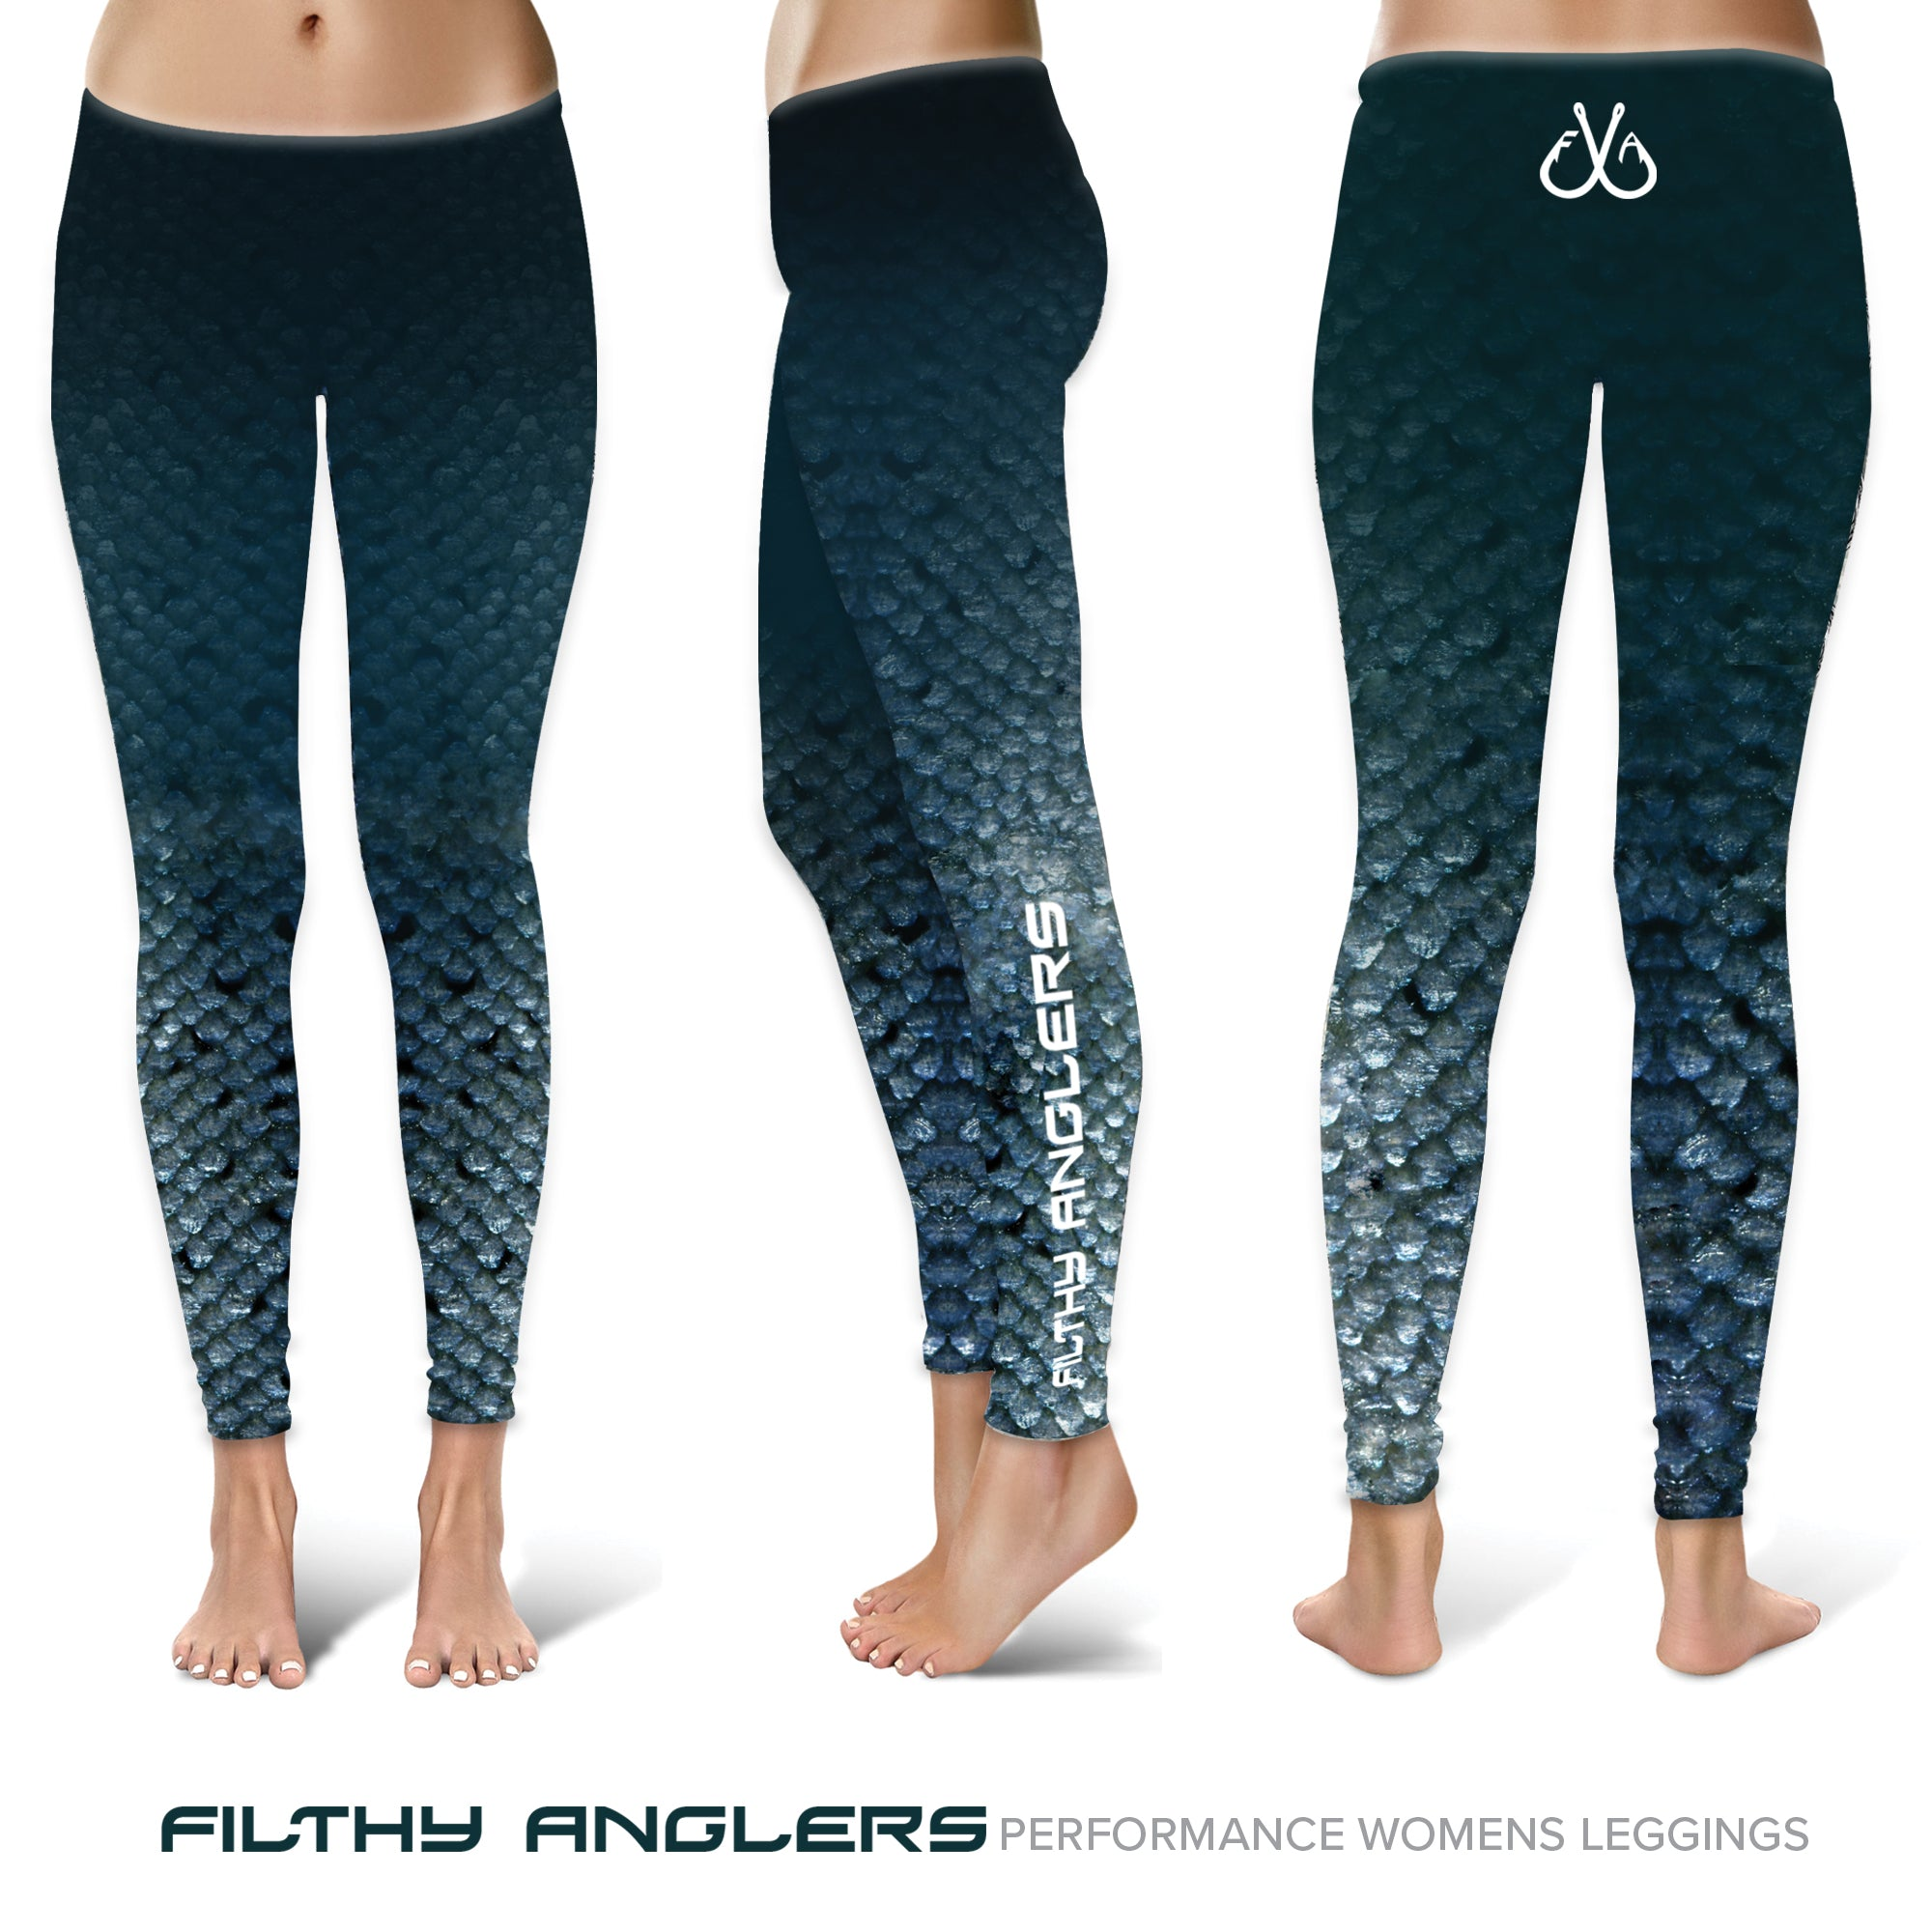 Women's Fishing Leggings, UPF Protection - Filthy Anglers